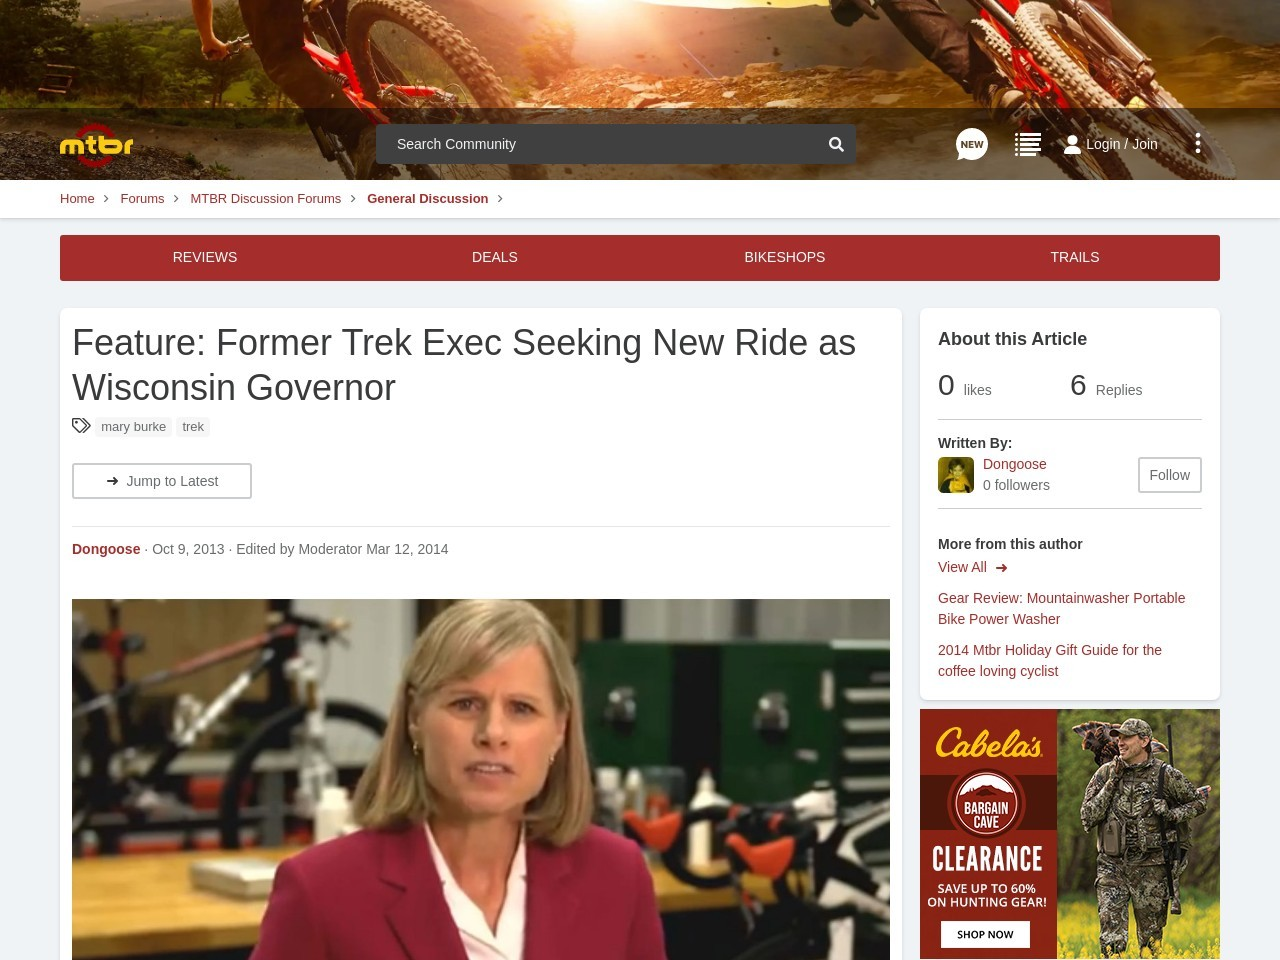 Feature: Former Trek Exec Seeking New Ride as Wisconsin Governor